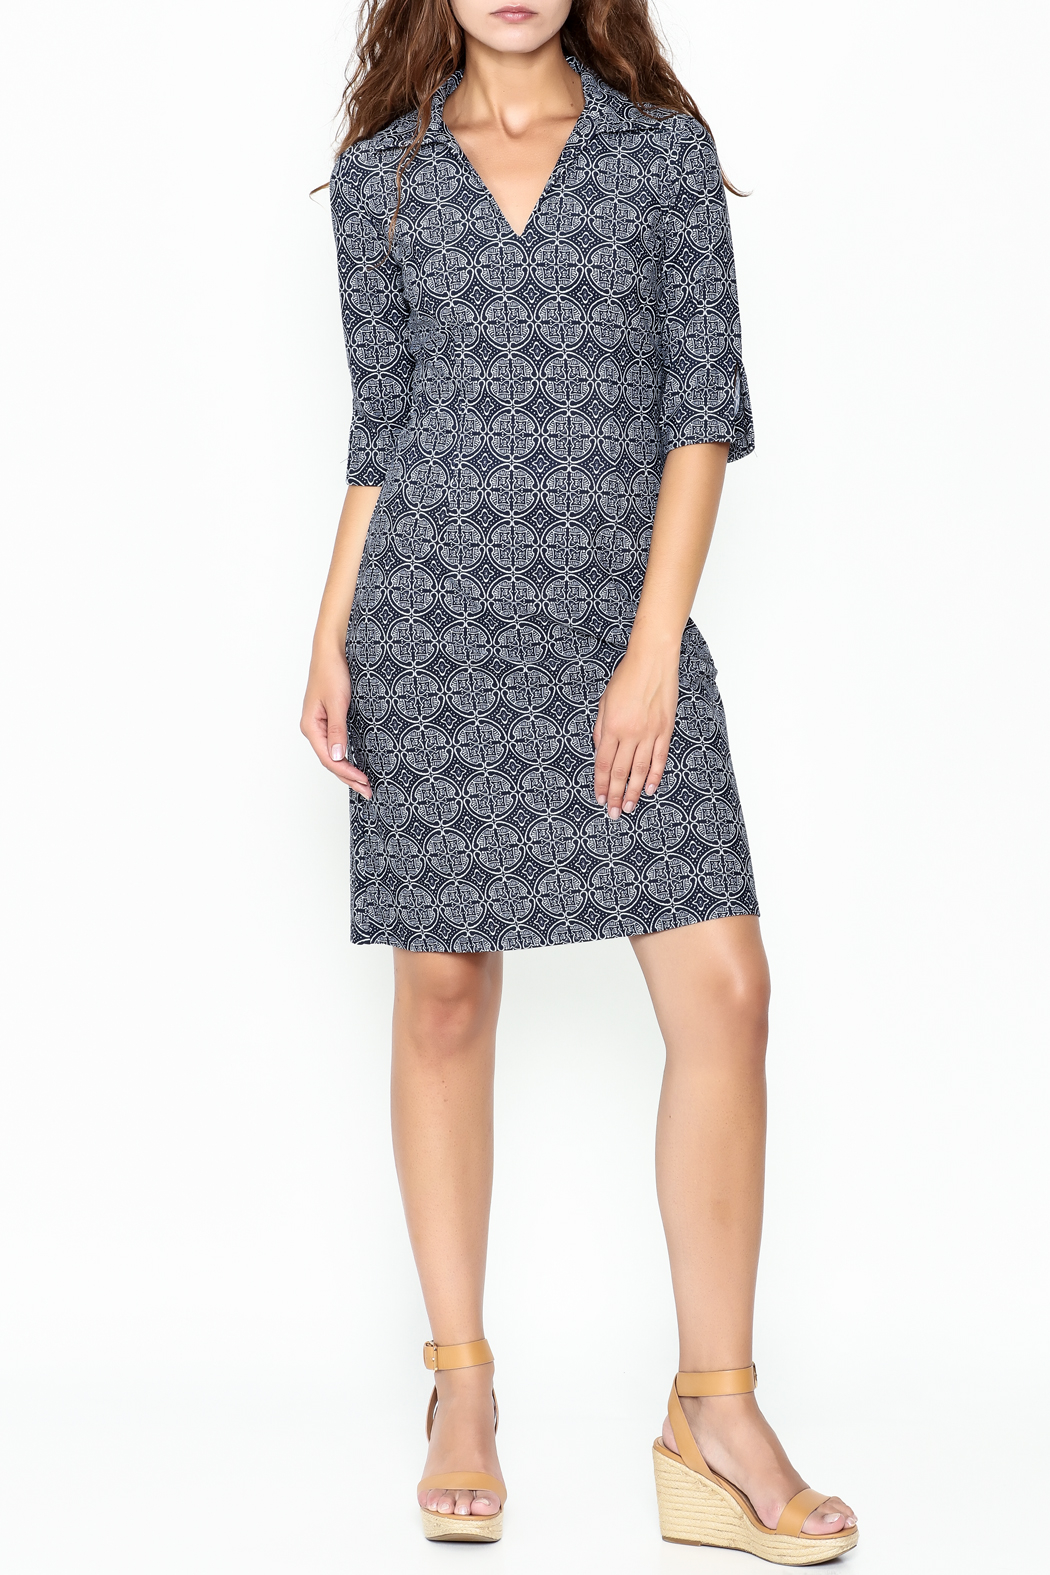 Jude Connally Megan Tunic Dress - Side Cropped Image